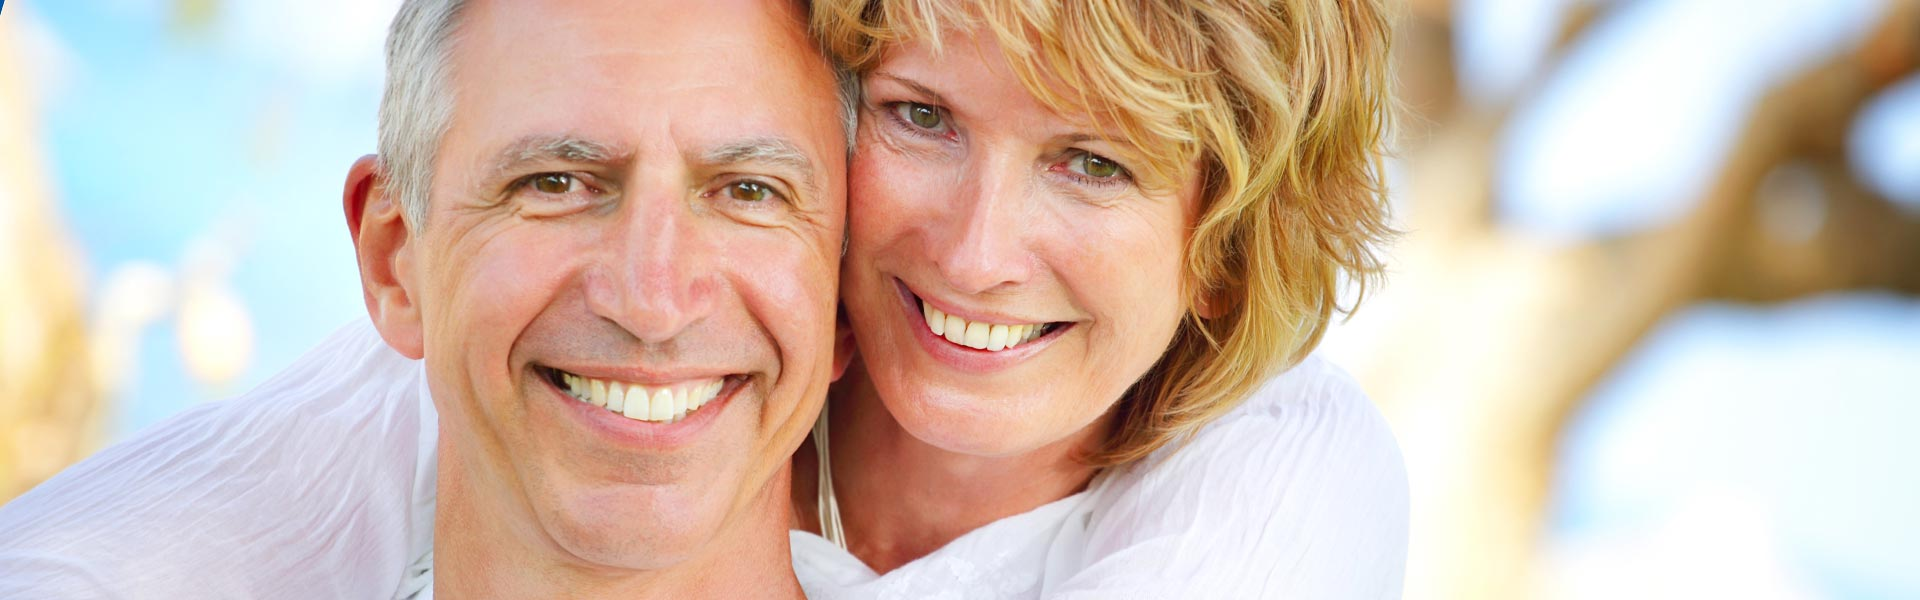 mature couple showing perfect teeth in smile